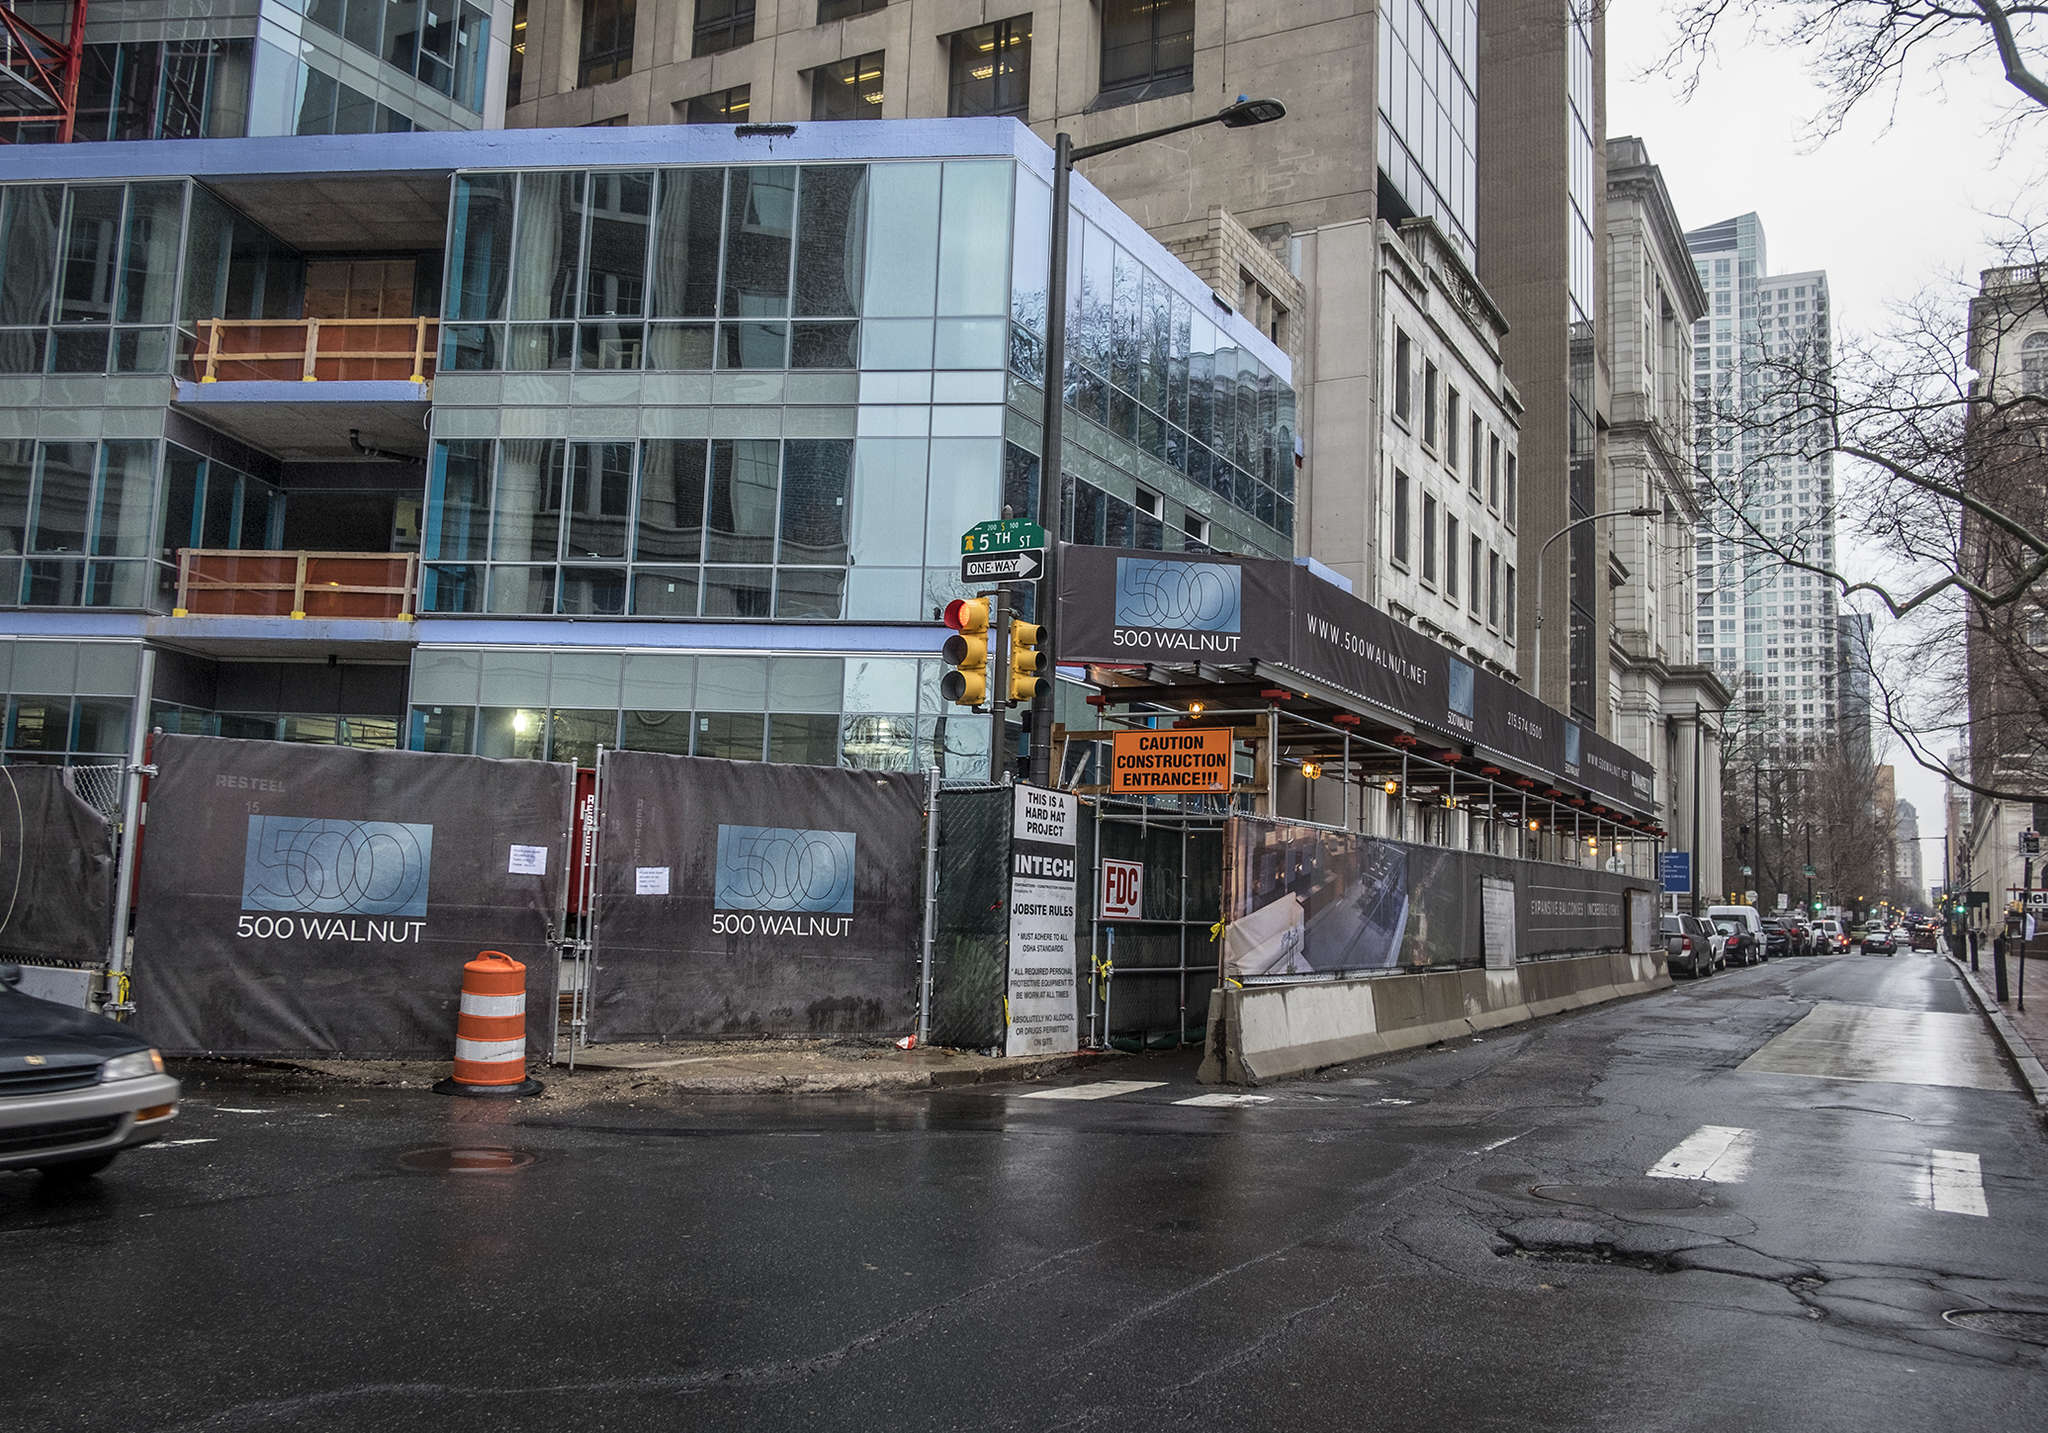 The luxury 500 Walnut building, scheduled to be finished early in 2017, includes one penthouse that is said to have sold for $17.85 million.